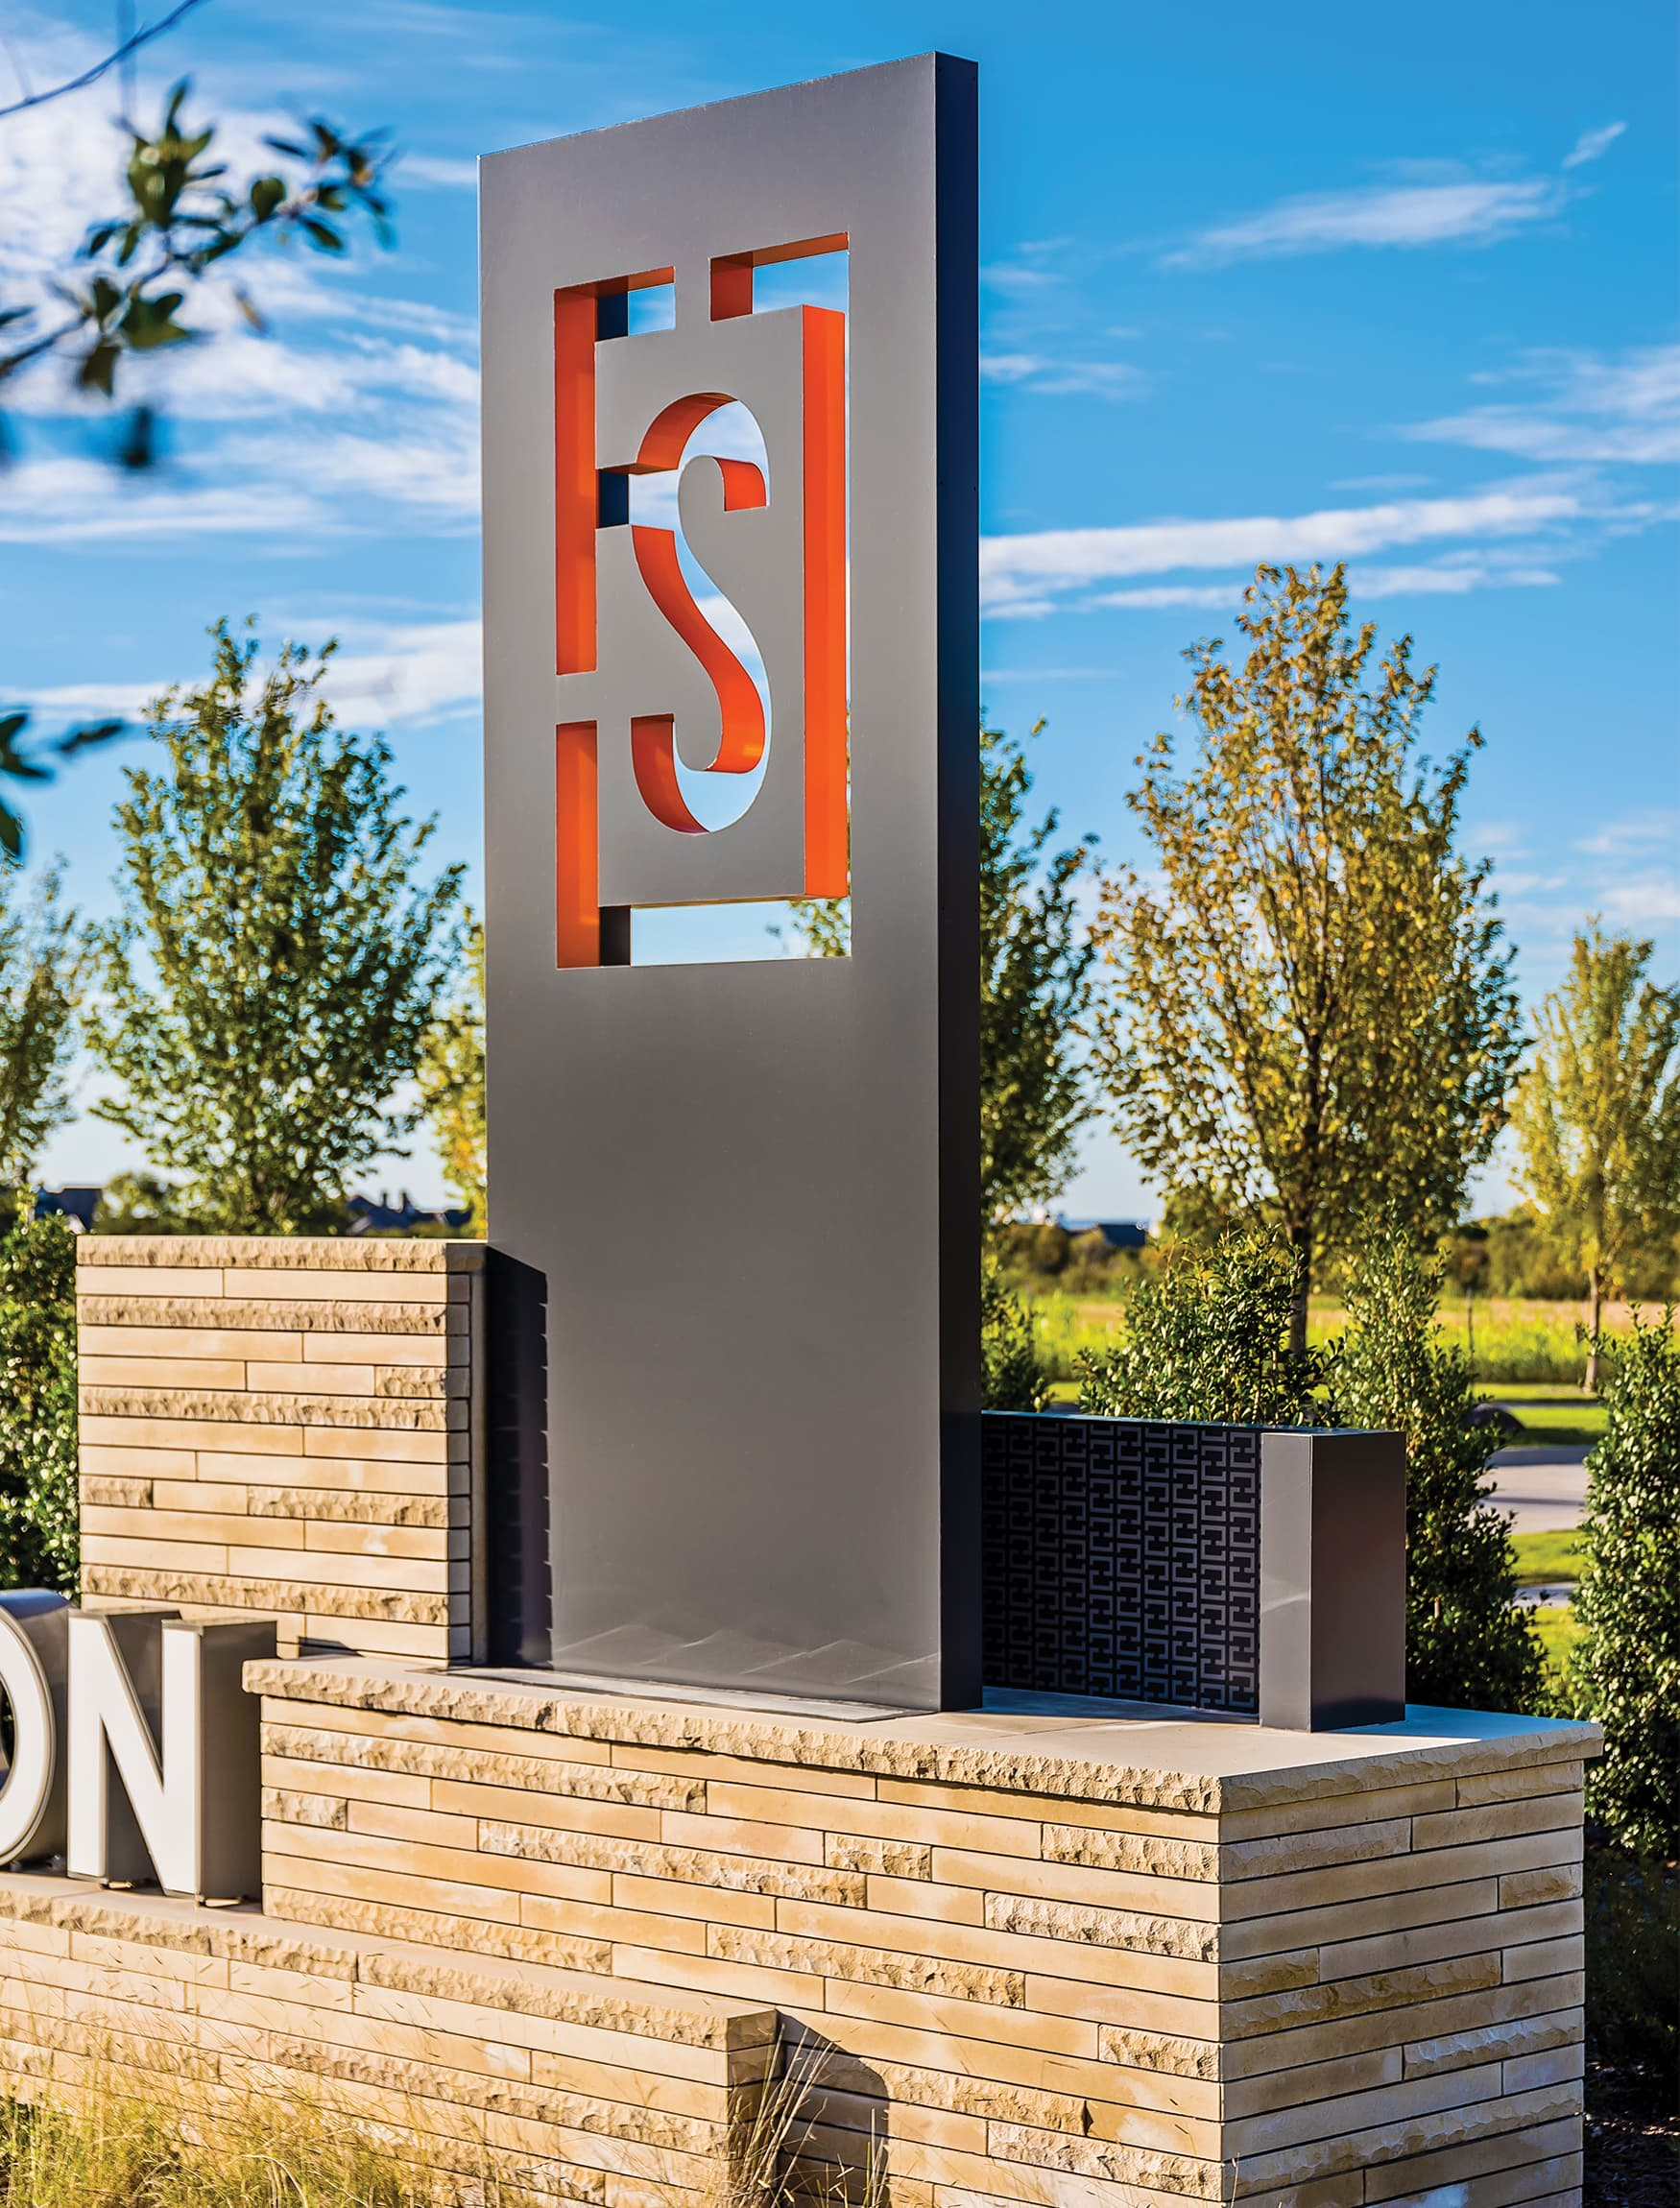 Frisco Station, a mixed-use project in Frisco, Texas, project identity monument